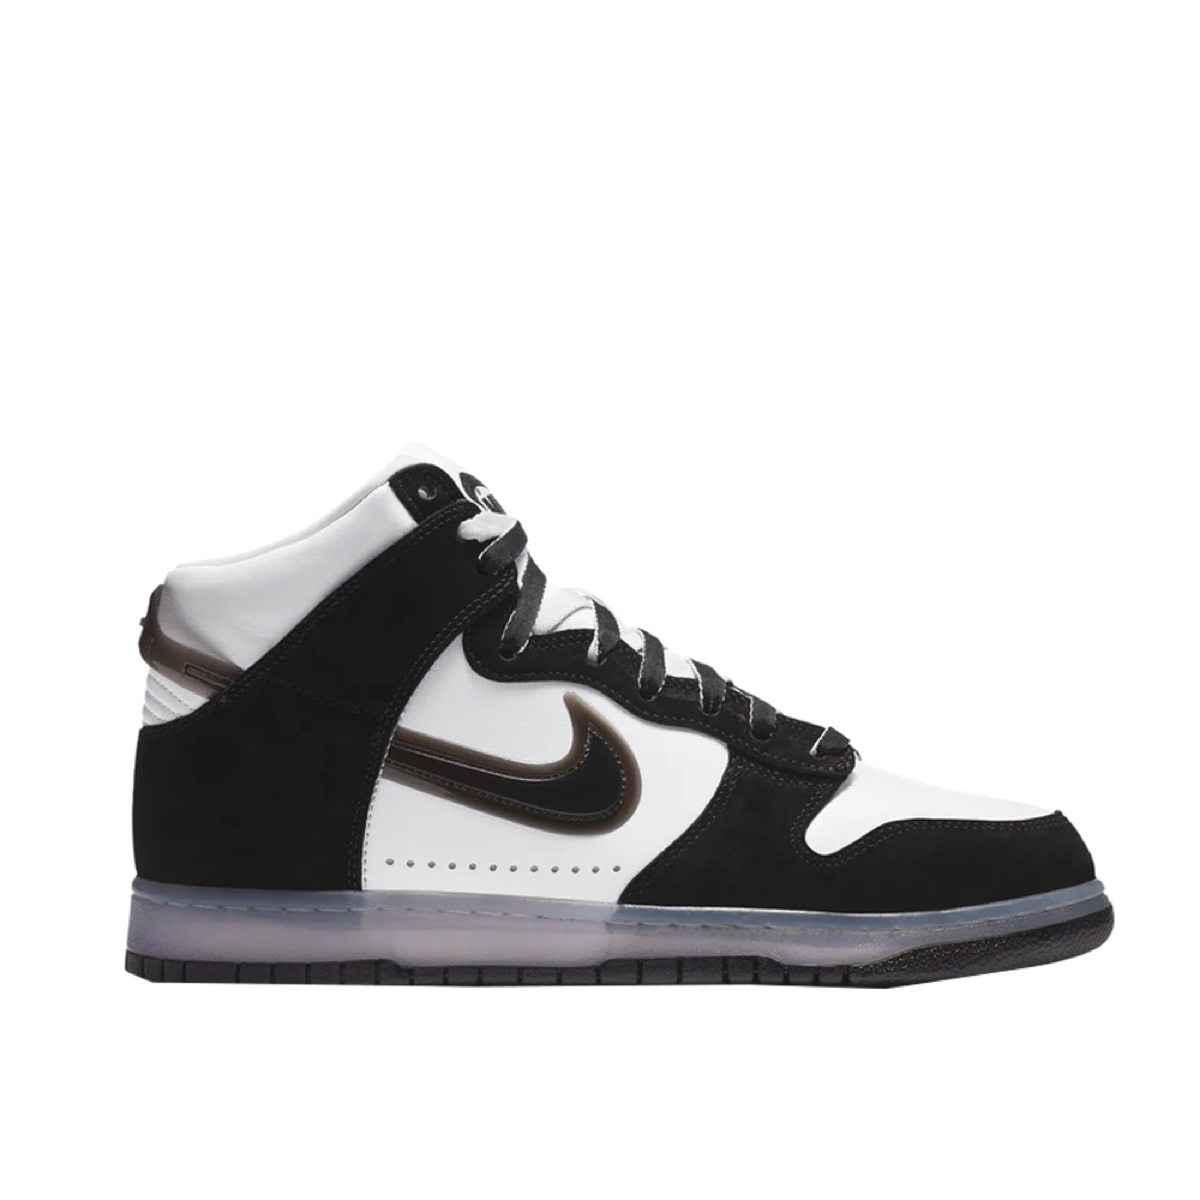 Slam Jam x Nike Dunk High White Black